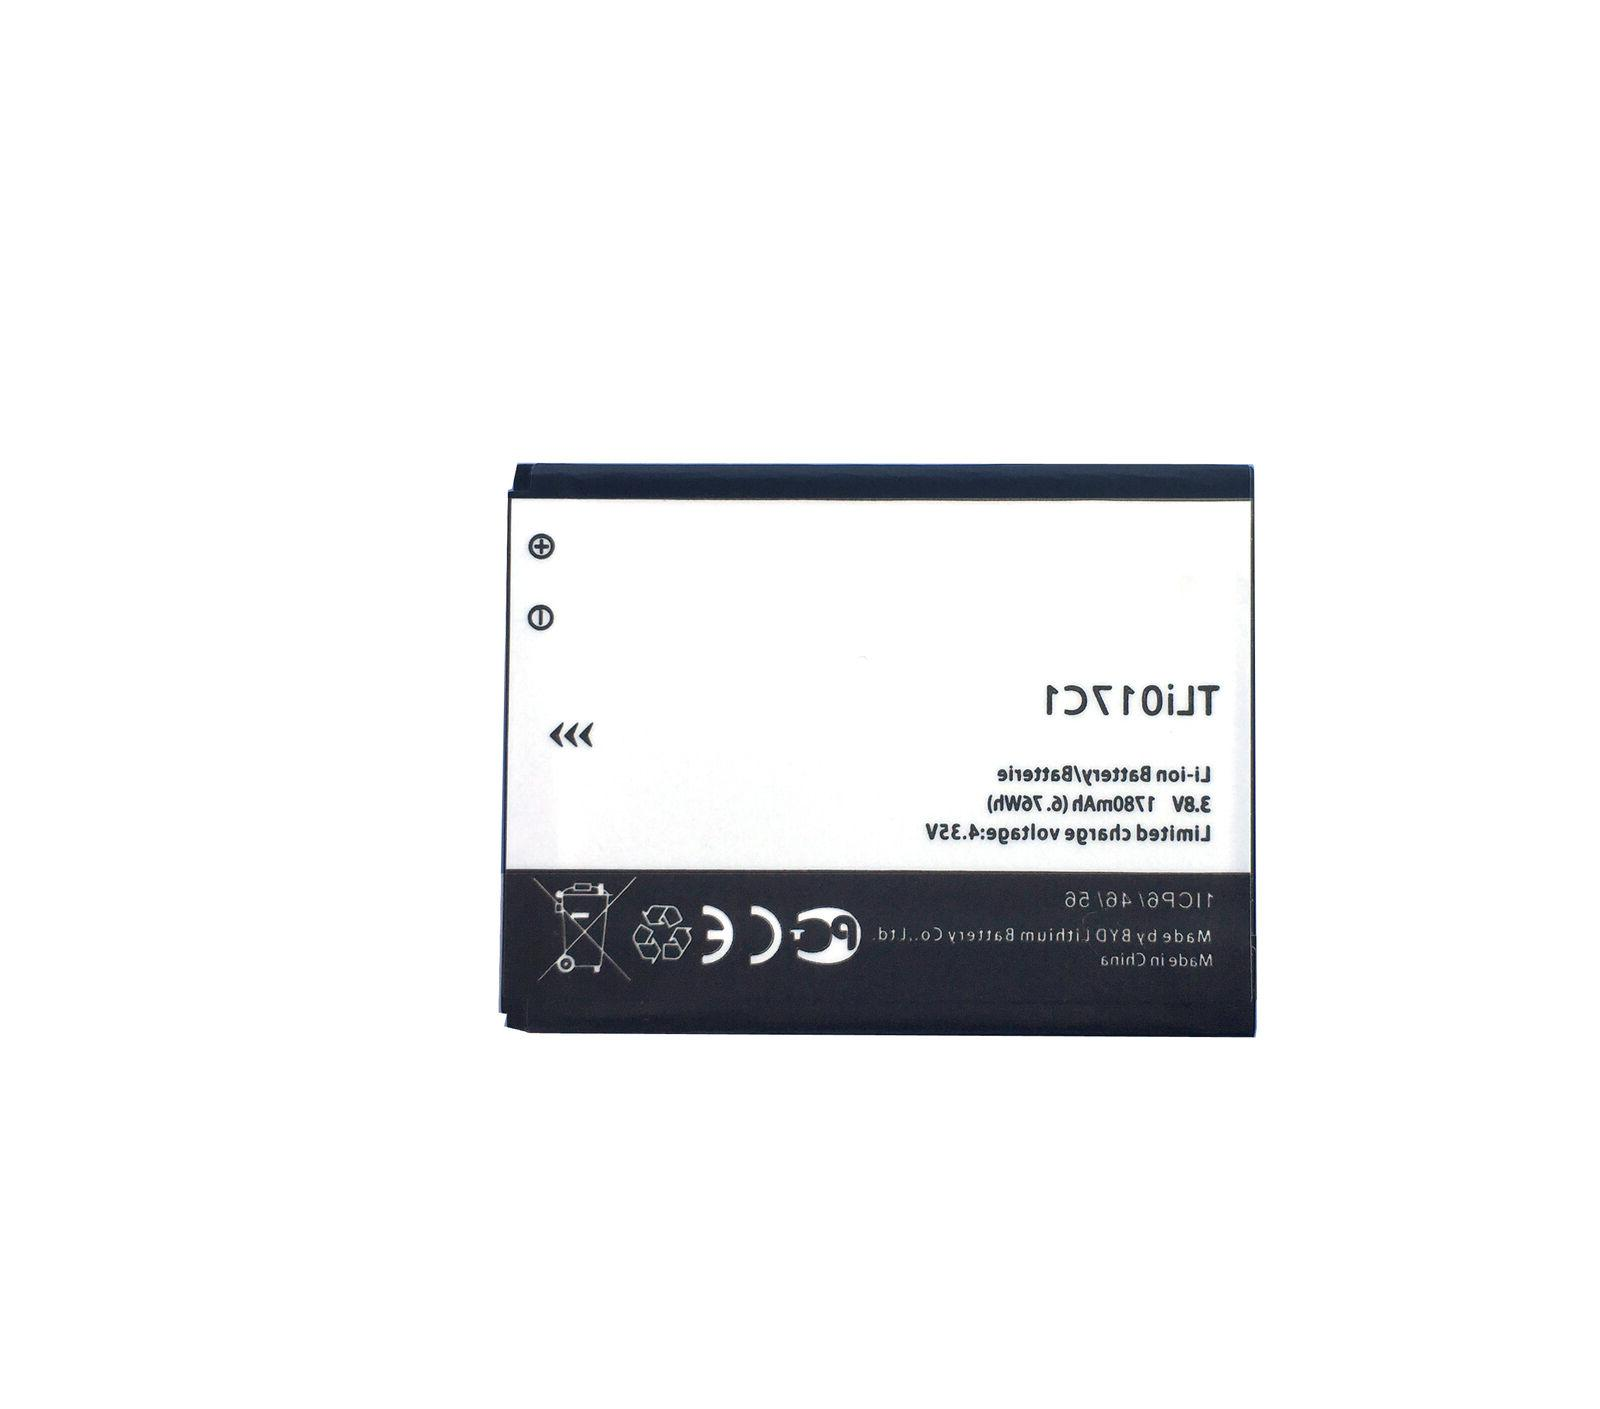 For One Touch Jitterbug Greatcall Flip Phone Battery TLi017C1